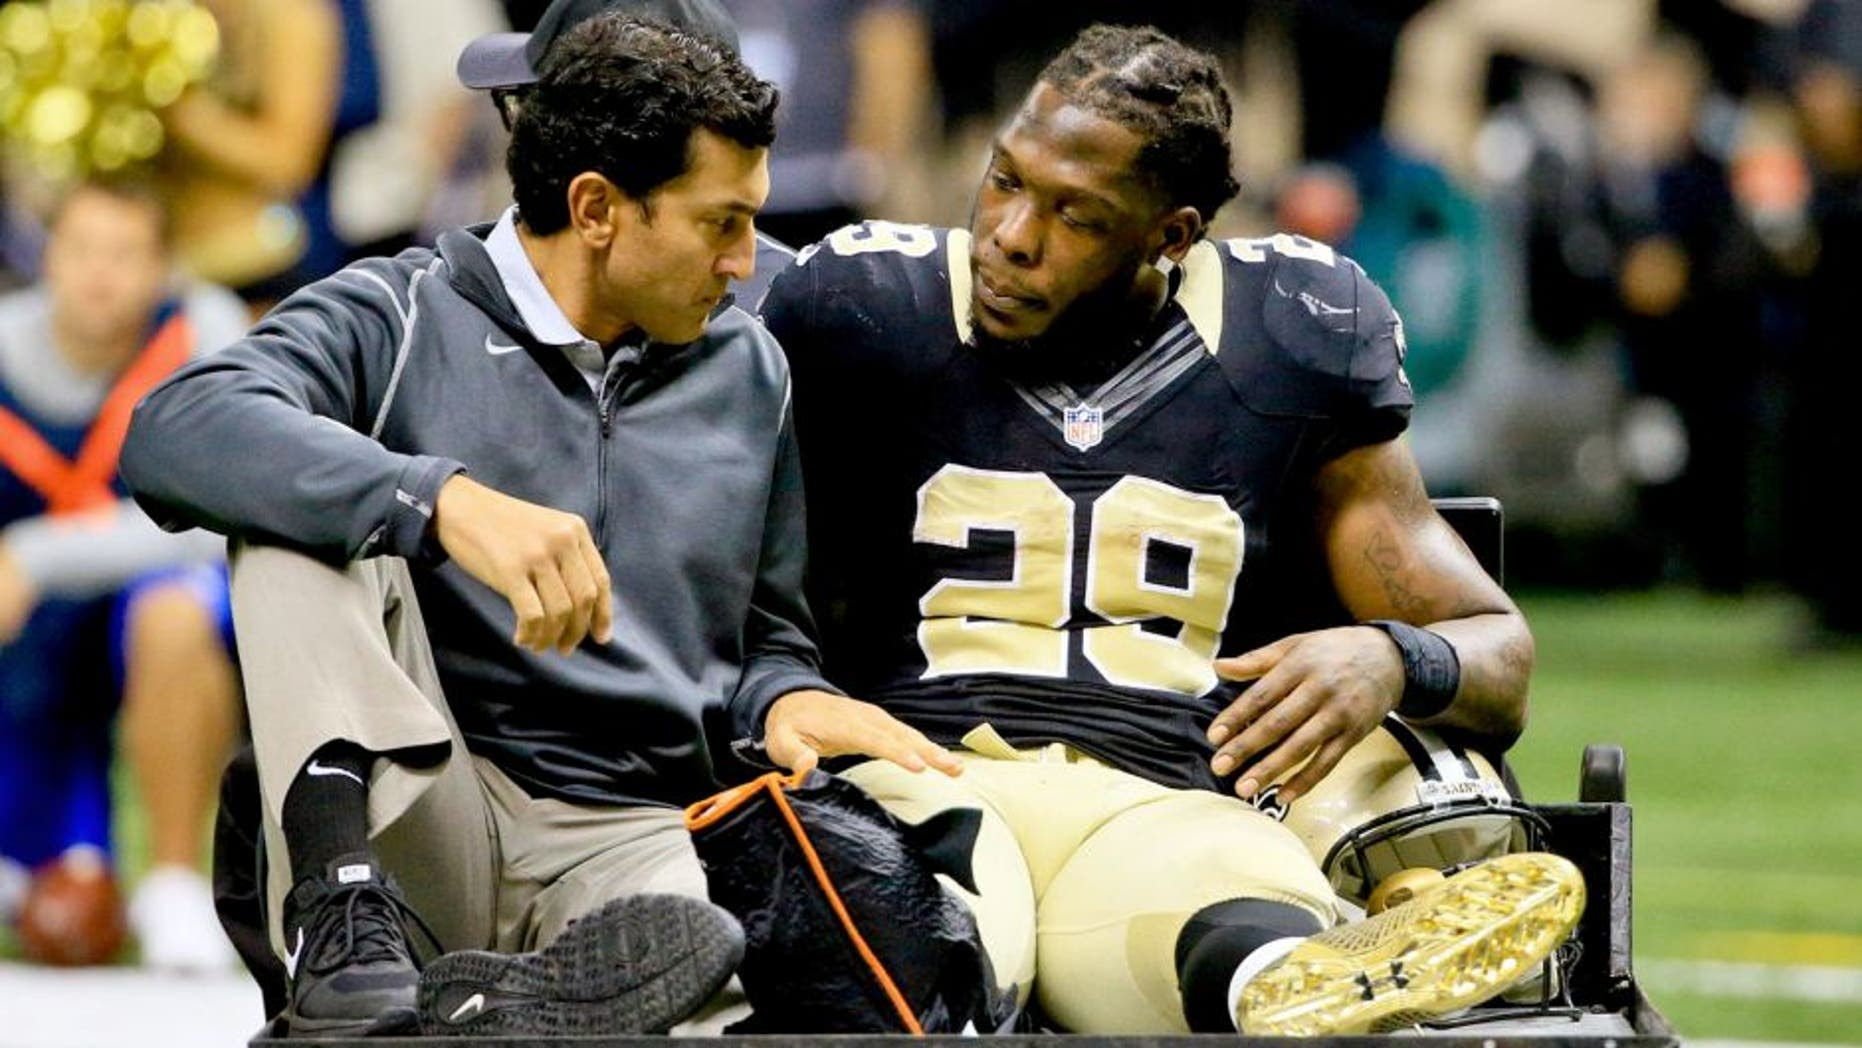 Nov 1, 2015; New Orleans, LA, USA; New Orleans Saints running back Khiry Robinson (29) is carted off the field following a leg injury against the New York Giants during the second quarter of a game at the Mercedes-Benz Superdome. Mandatory Credit: Derick E. Hingle-USA TODAY Sports